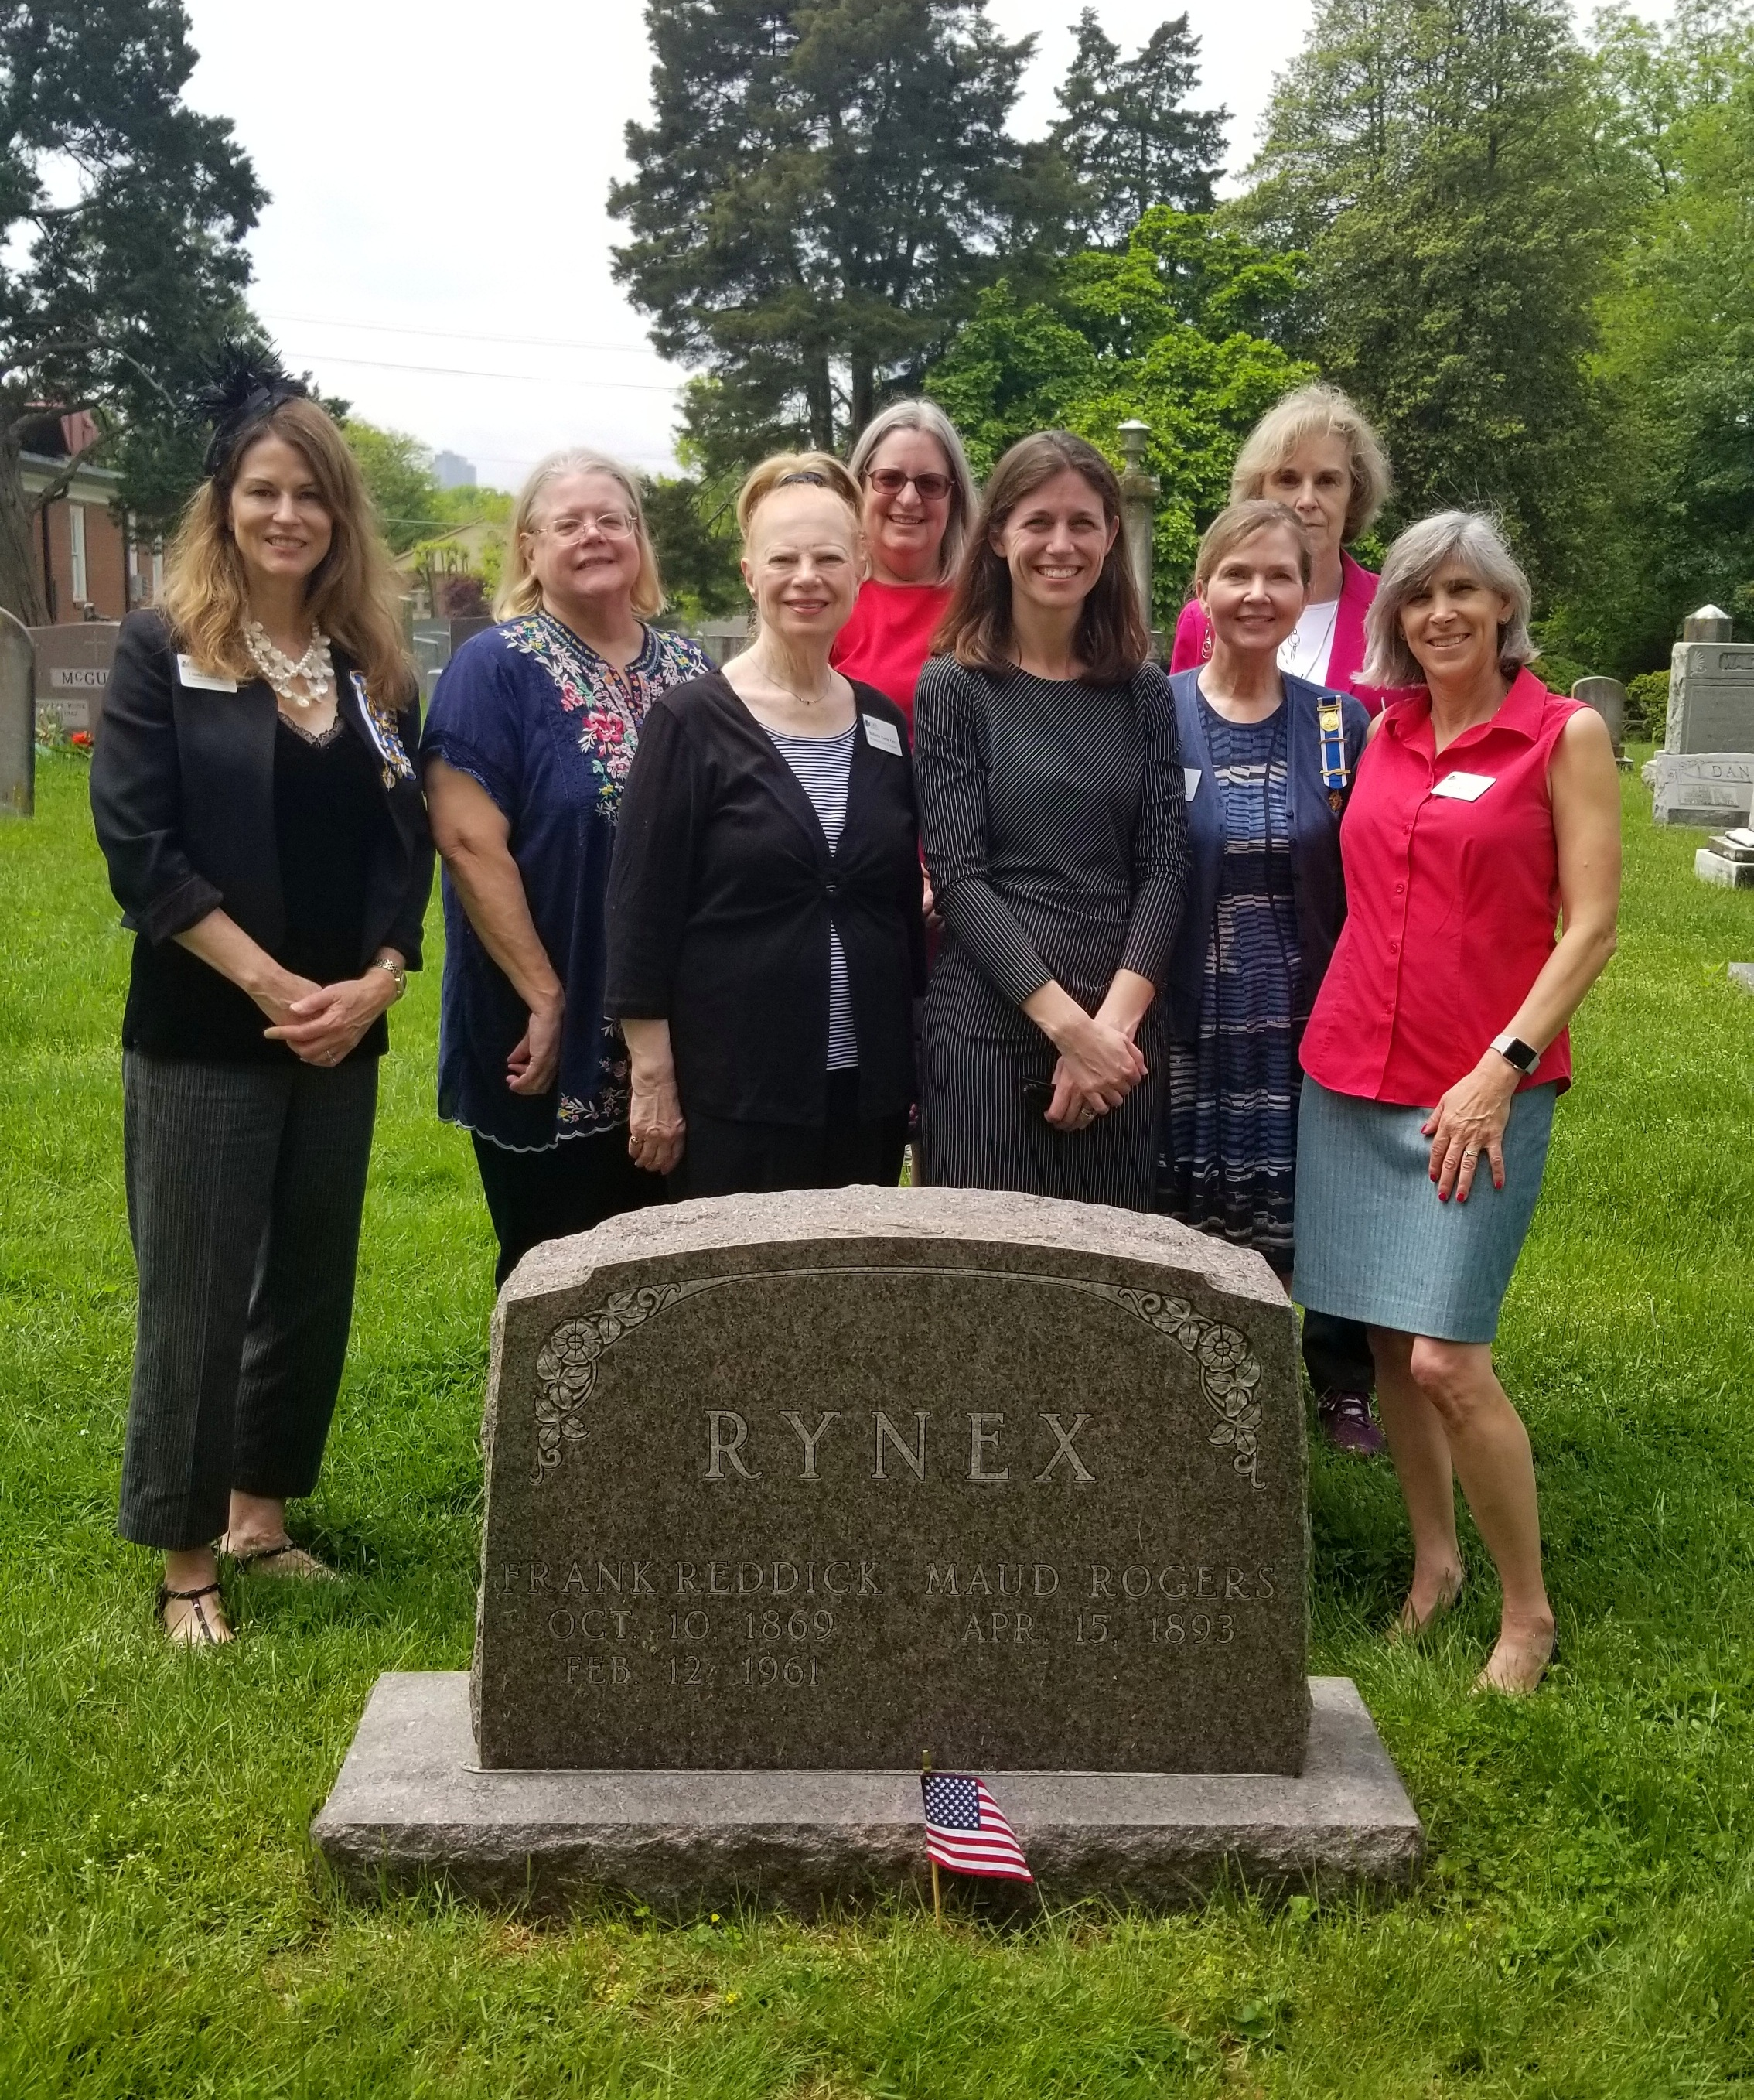 Freedom Hill Daughters visit the grave of Organizing Regent Mrs. Maud Rogers Rynex.